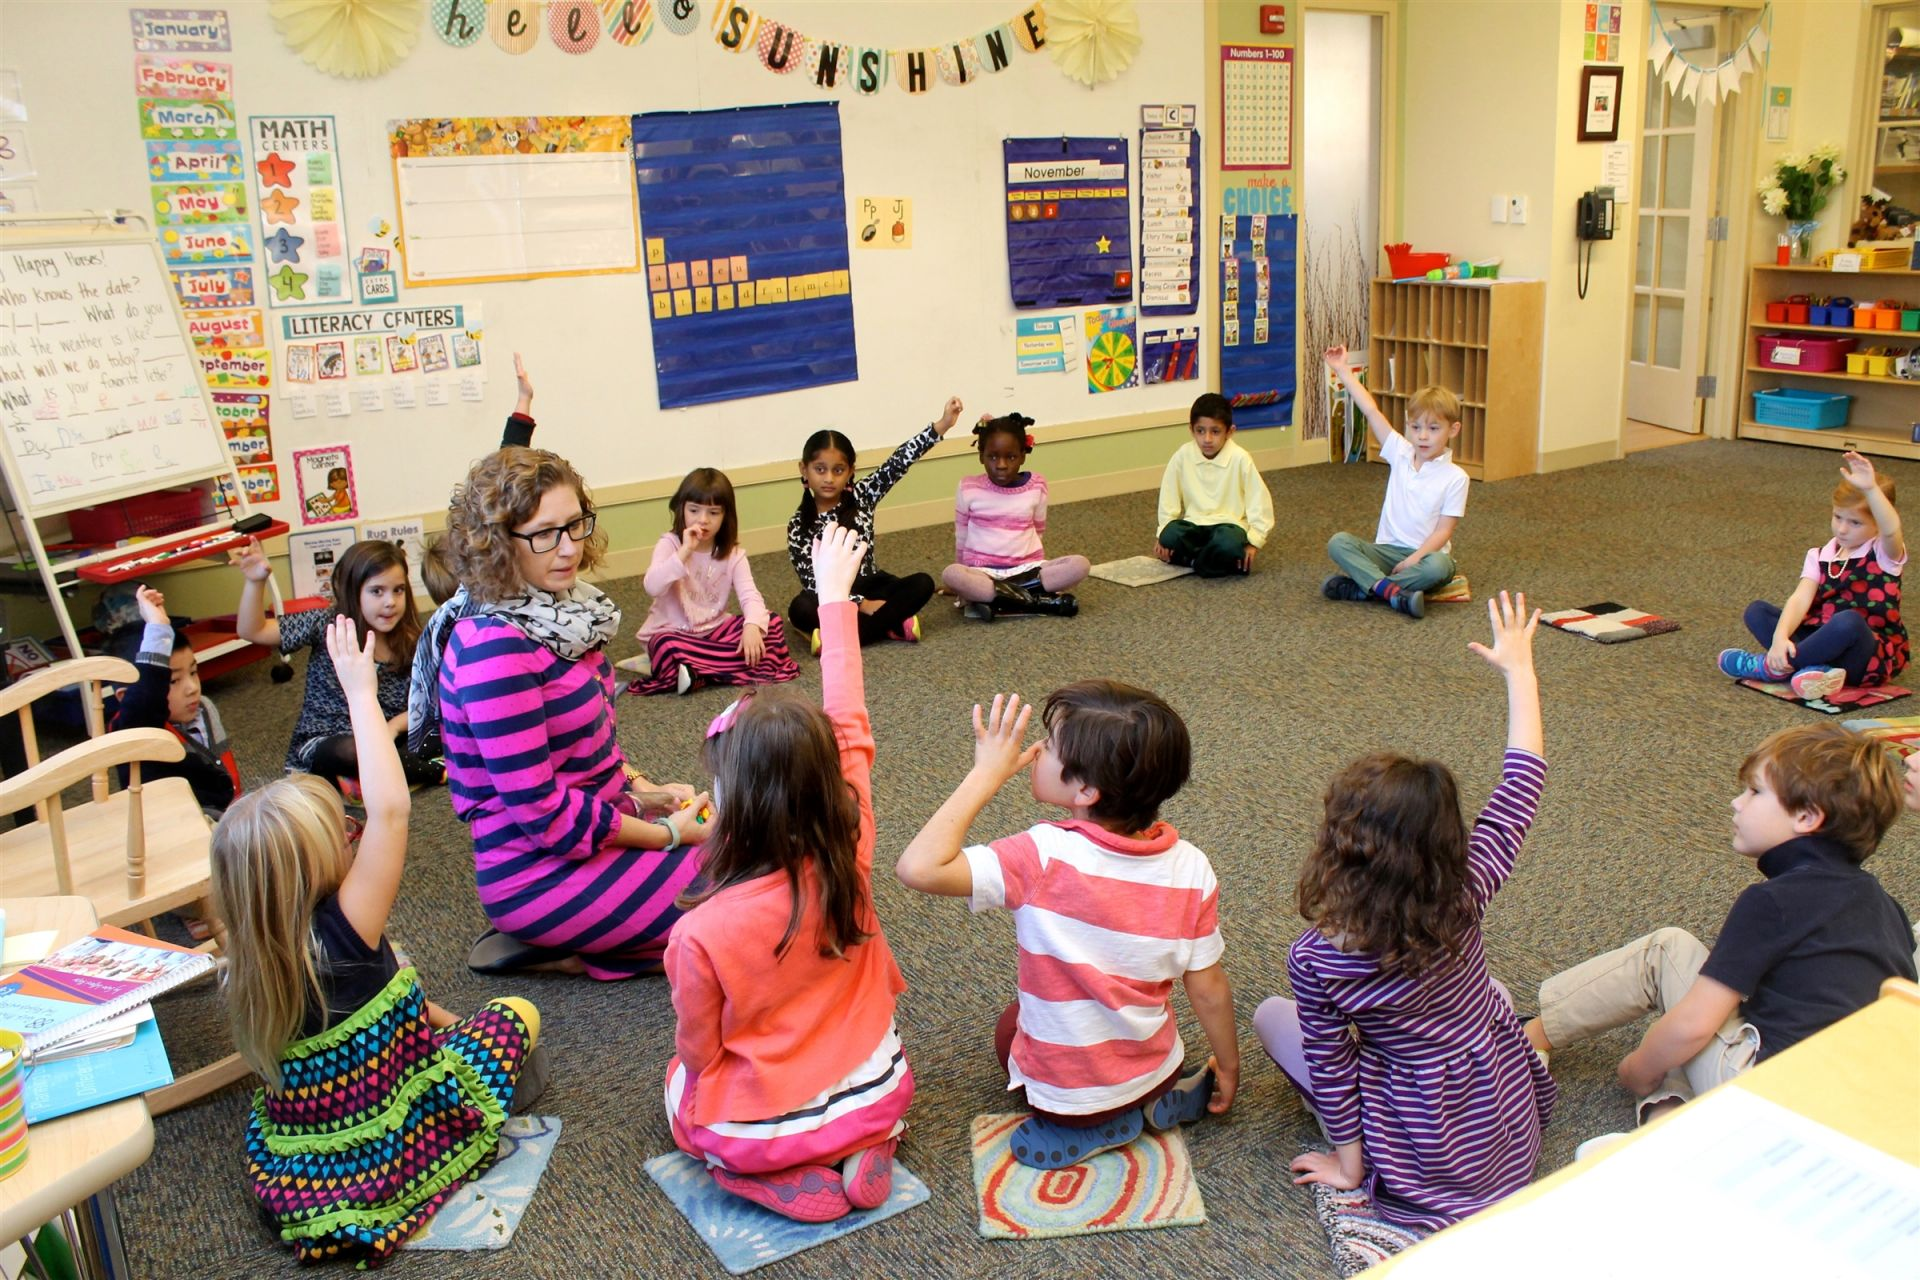 At Morning Meeting, students learn about their day, share thoughts and ideas with their classmates, and practice being good listeners. Fay's Primary School classrooms are guided by the Responsive Classroom Curriculum, a pro-social competency program in which children learn to follow agreed-upon rules as they becomes accustomed to the routines and procedures of the school environment.